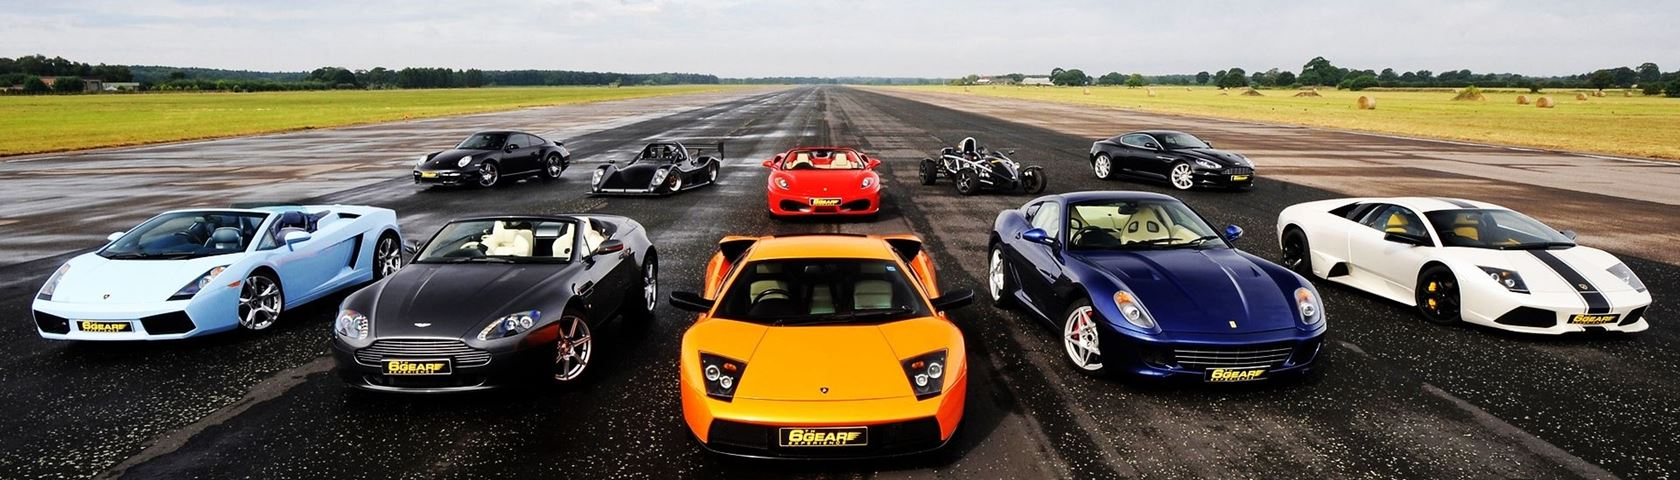 Exotic Cars in a Line